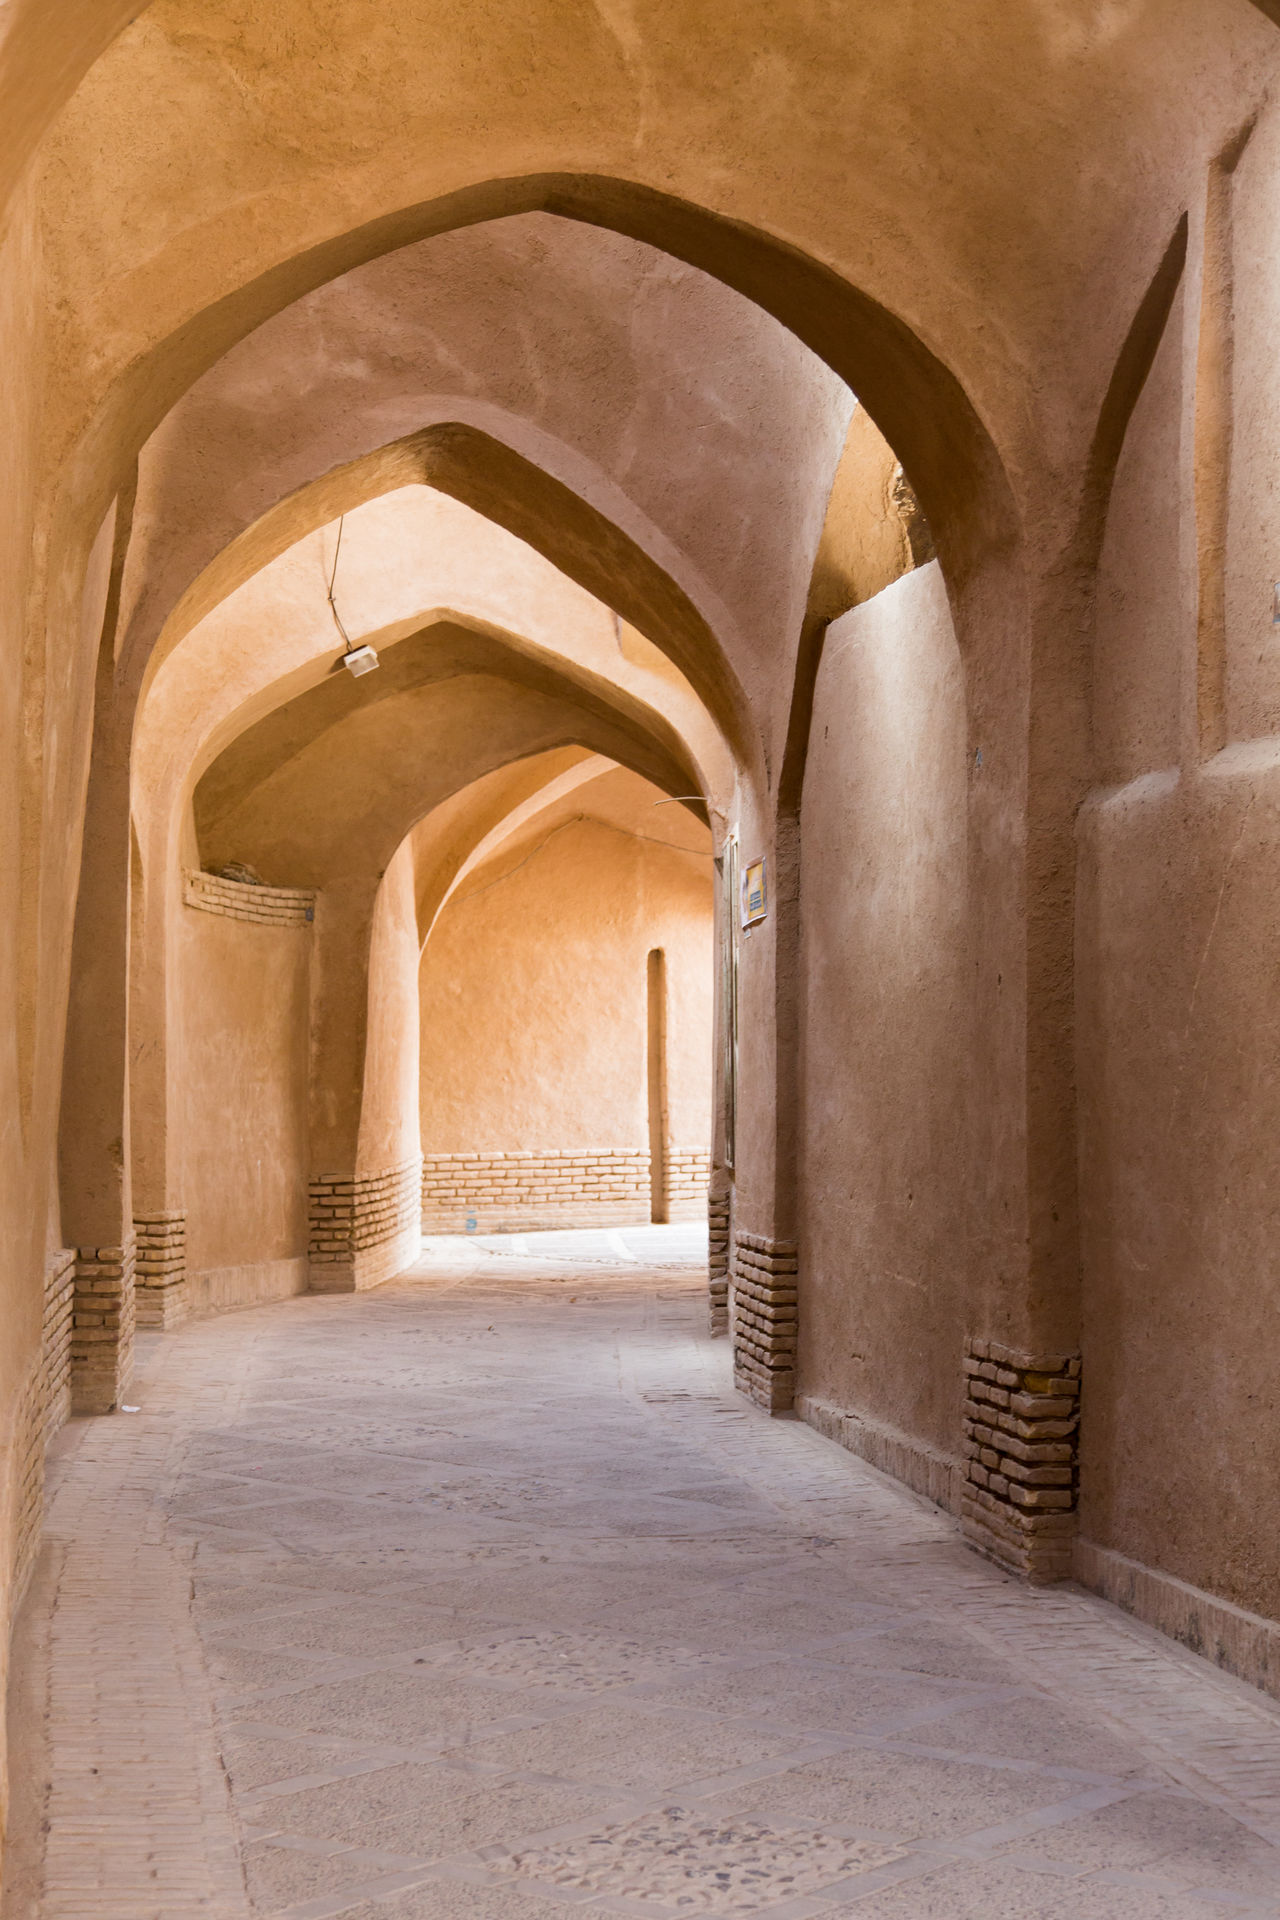 Arch Architectural Feature Corridor Empty Historic Iran Laneway Middle East Path Persia Travel Destinations Walkway